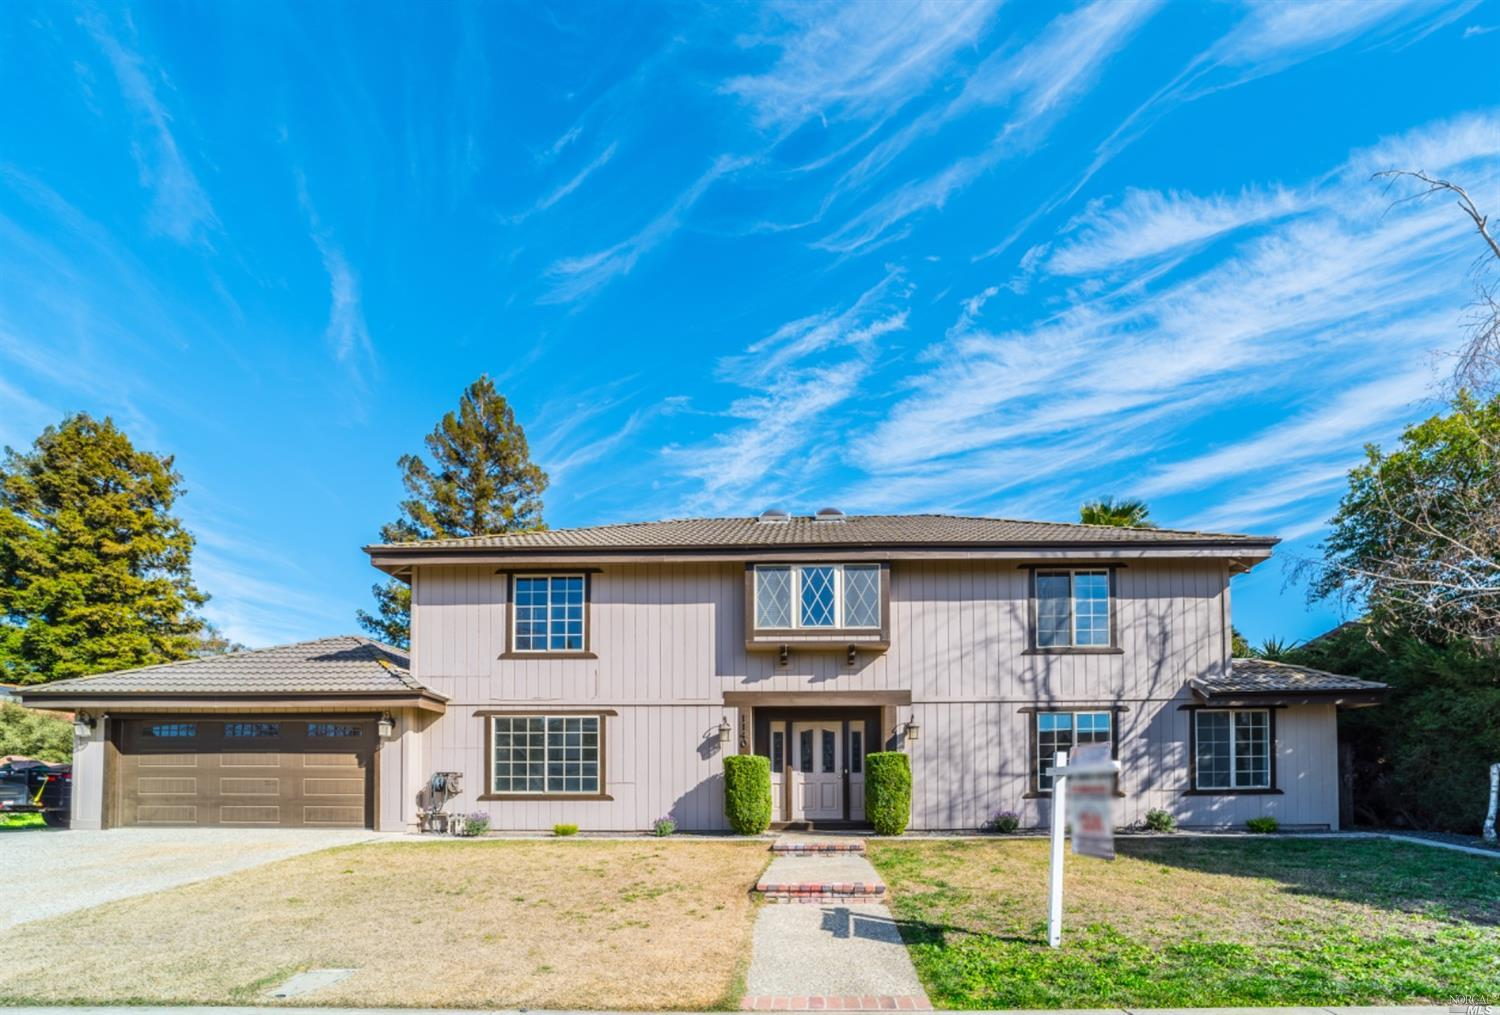 Welcome to your new home! This updated 4 bedroom/2.5 bath home will check so many boxes. Walk in to